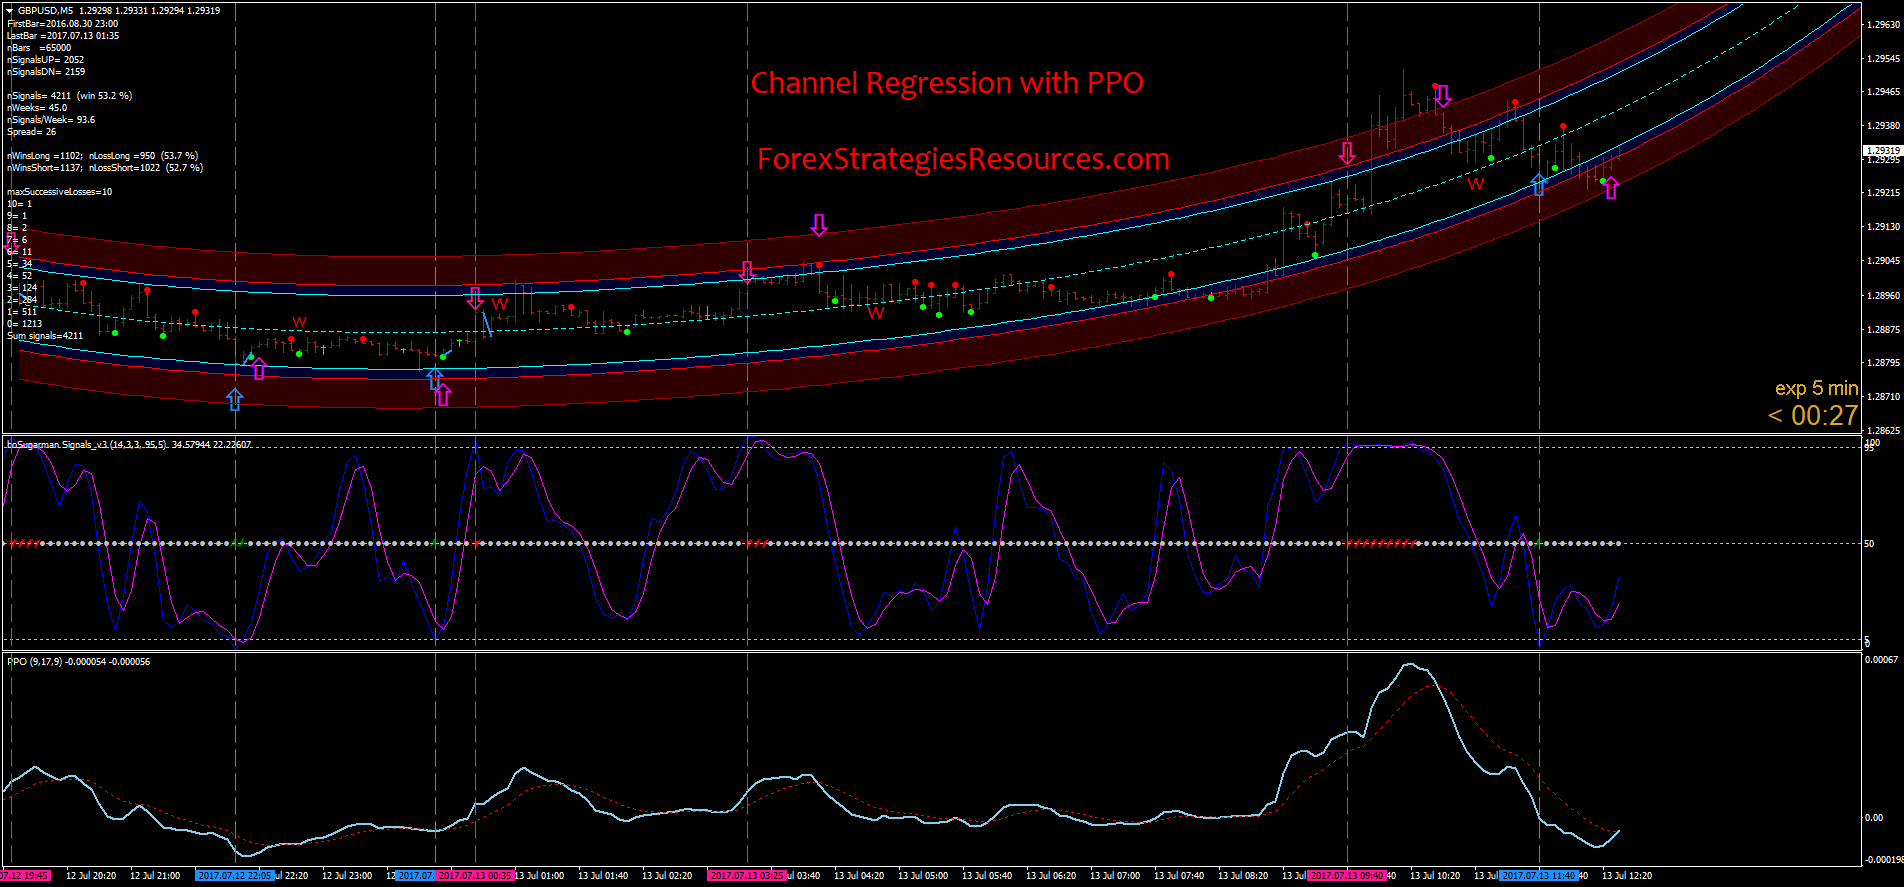 Channel Regression with PPO - Forex Strategies - Forex